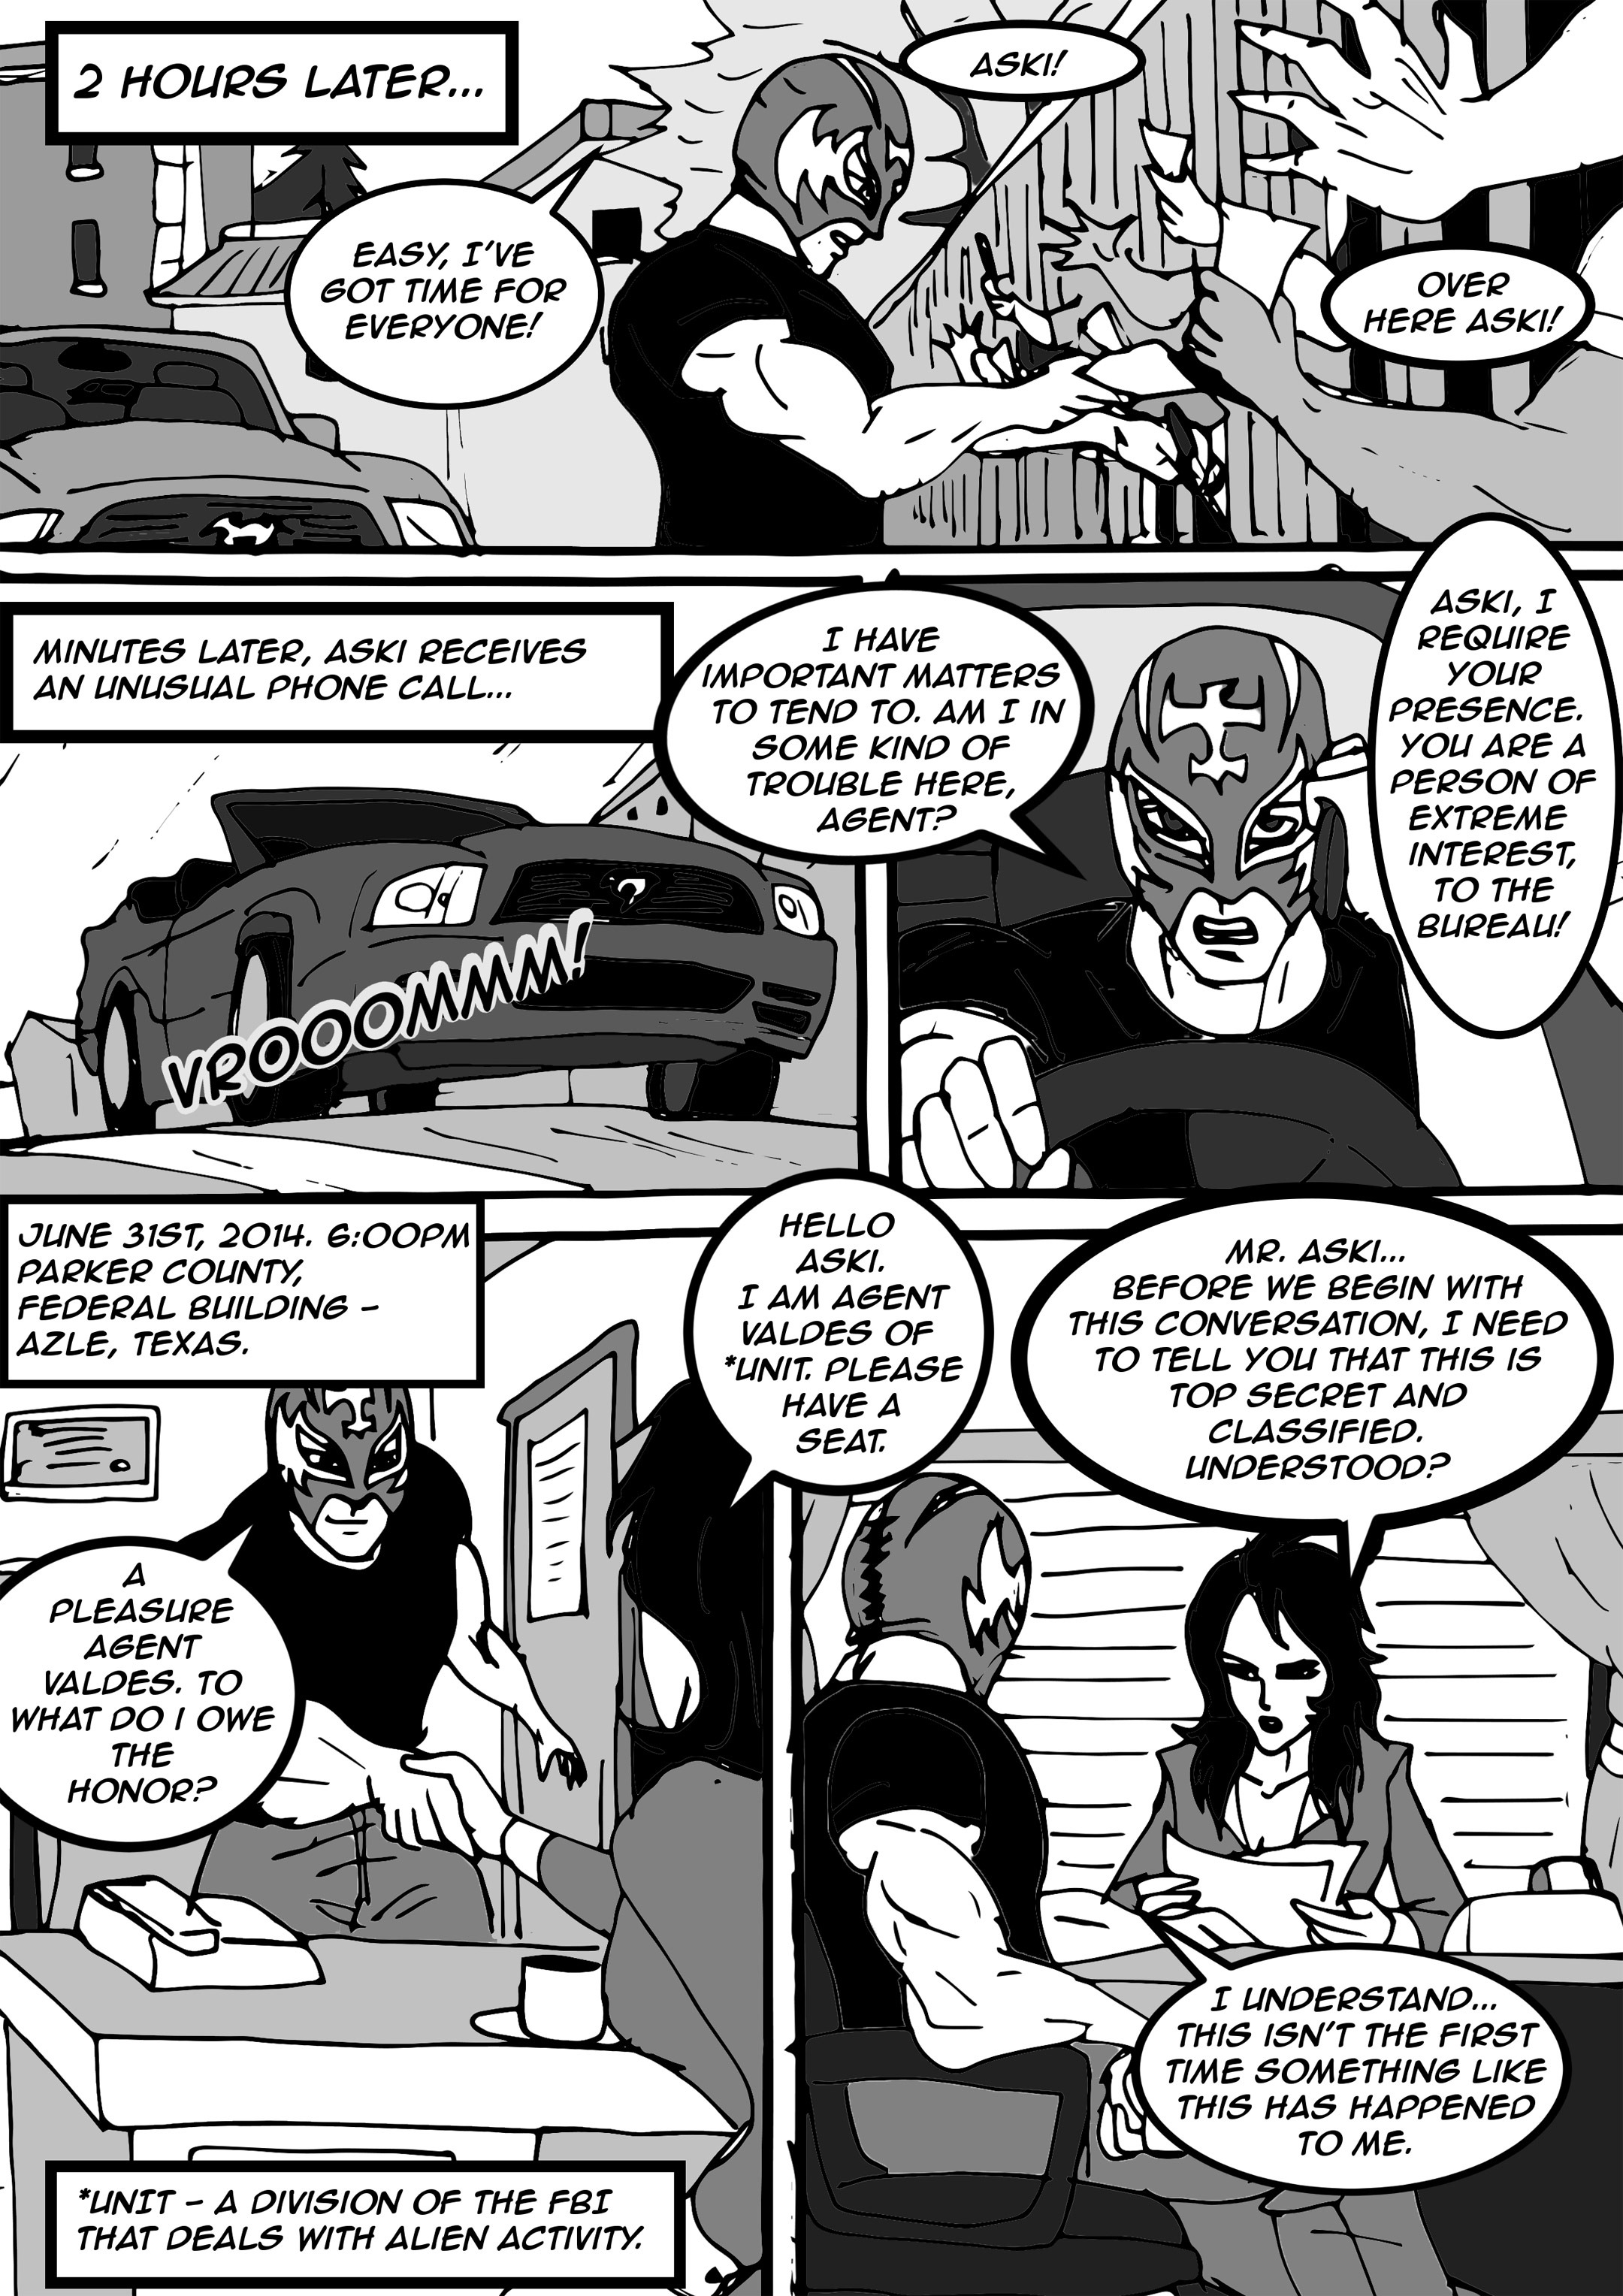 Read online Aski vs. The Draconians comic -  Issue #1 - 11